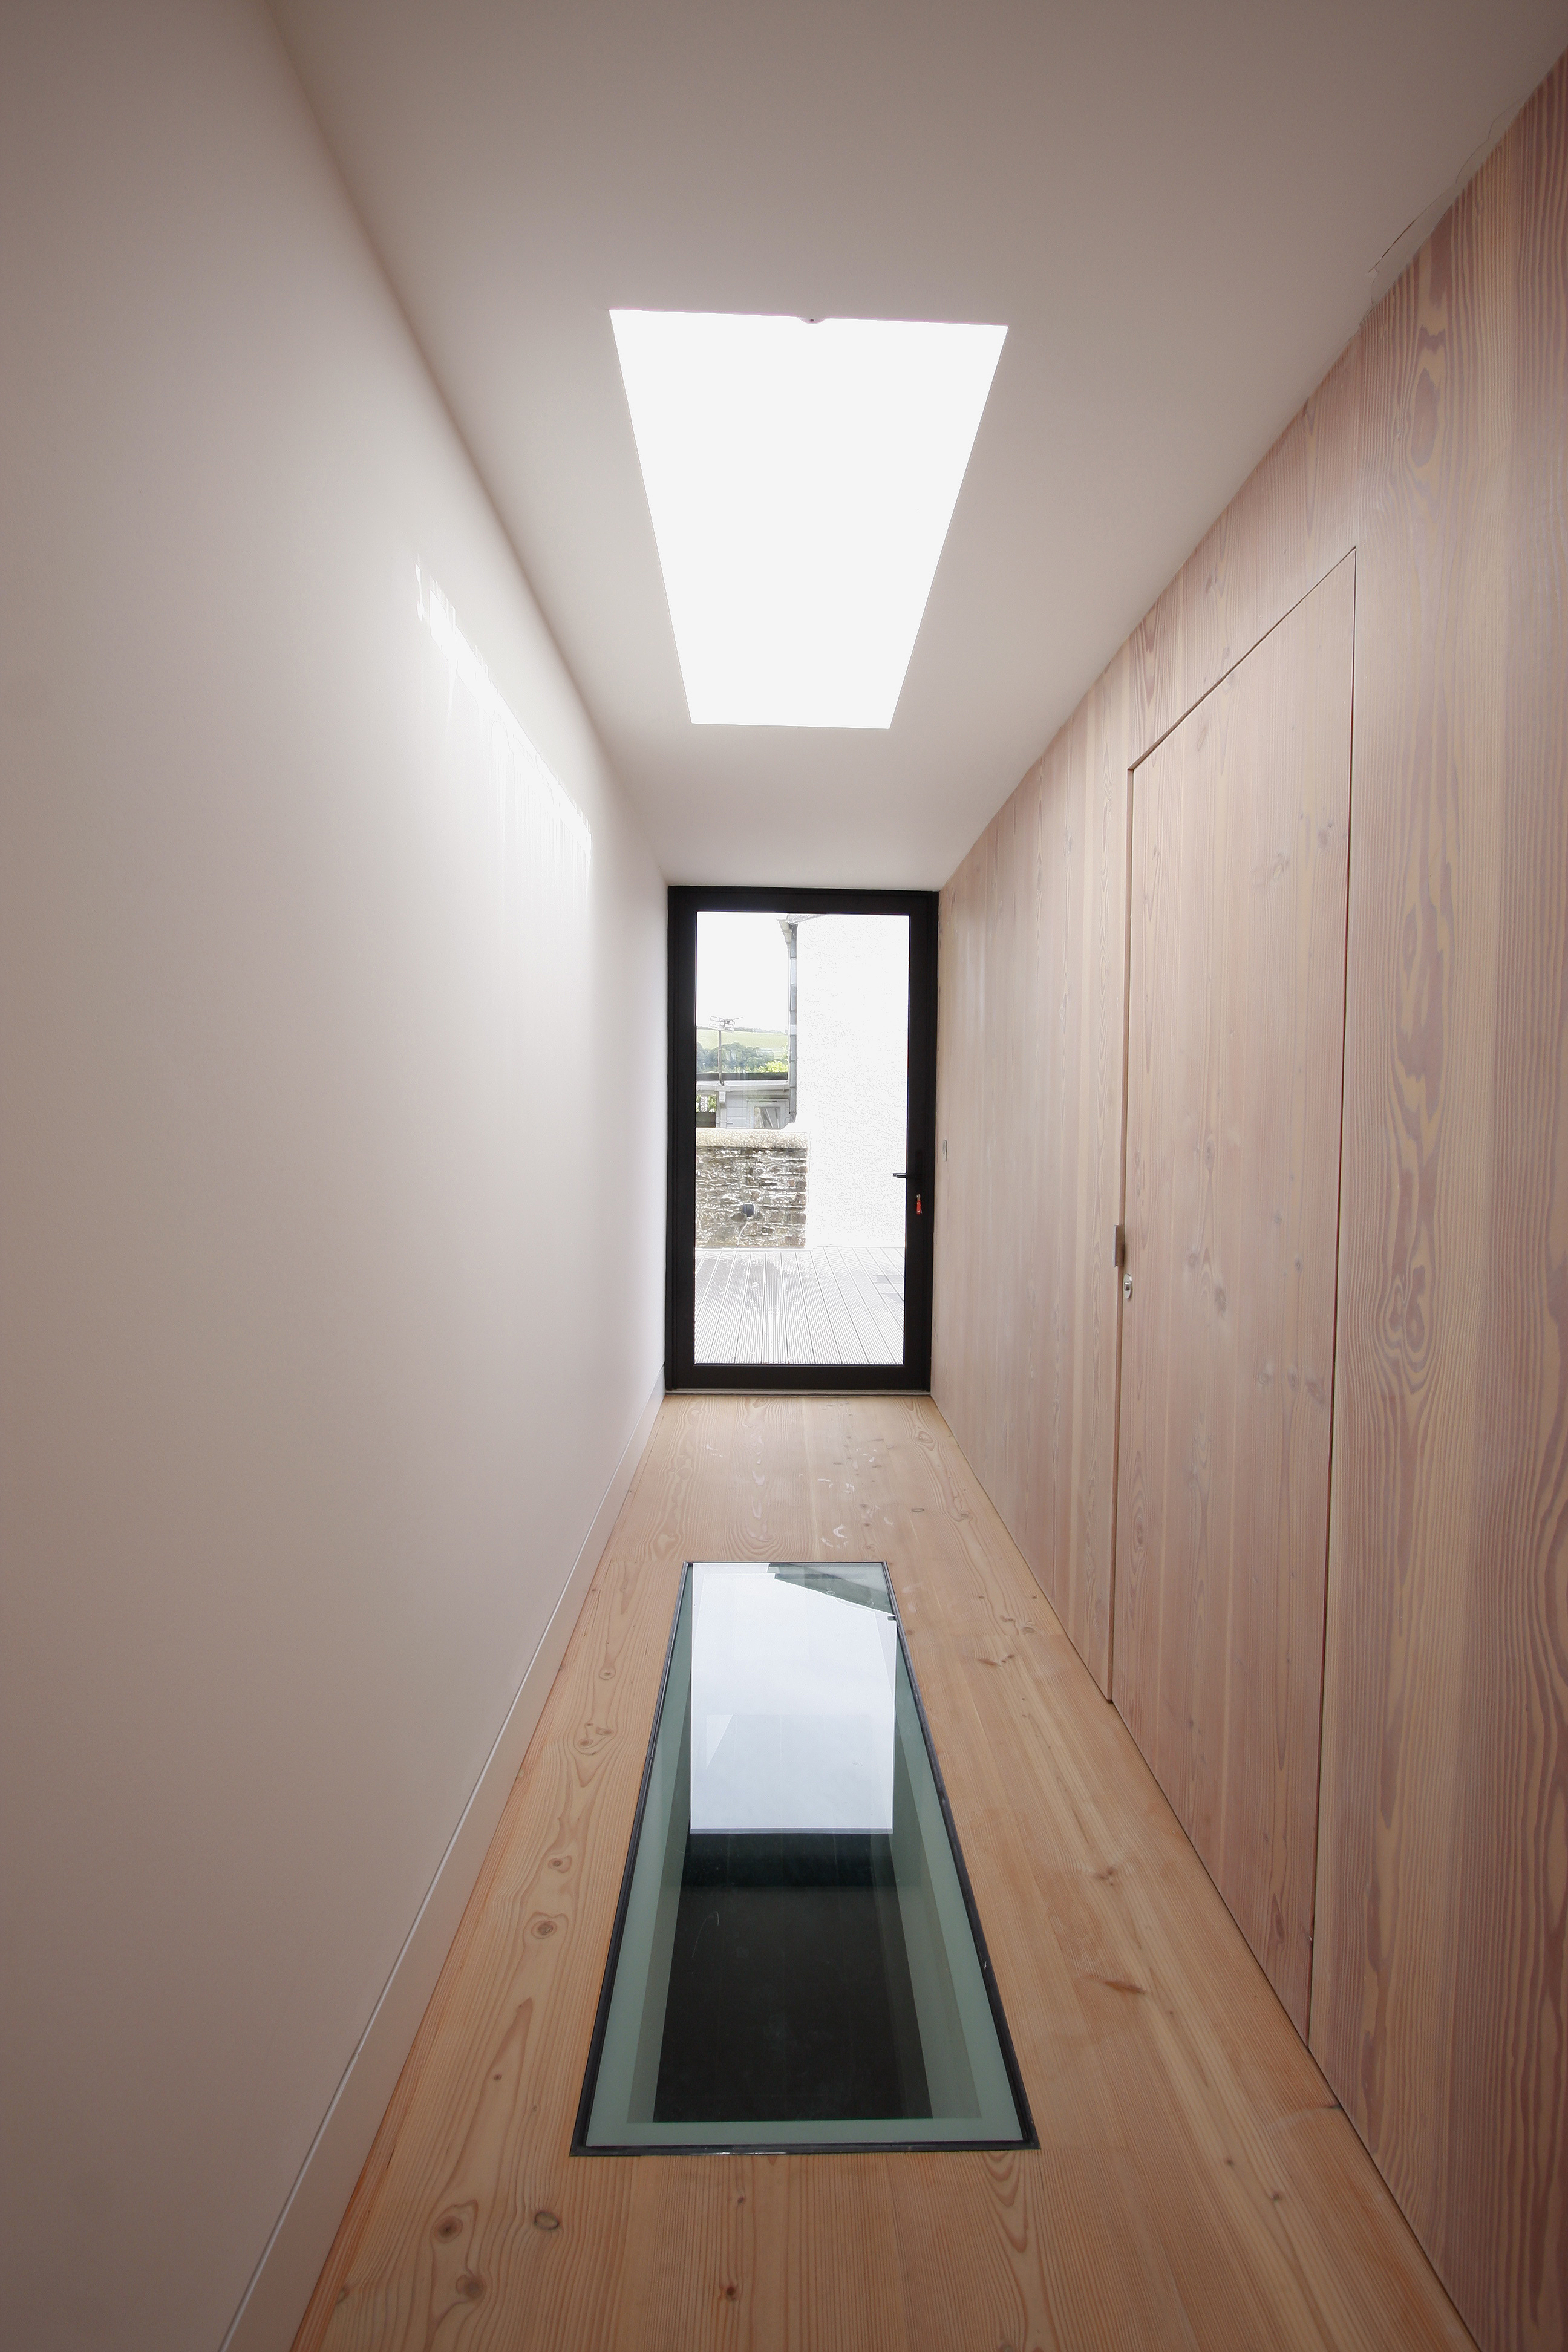 Skylight above a Walk on Glass Floor Unit